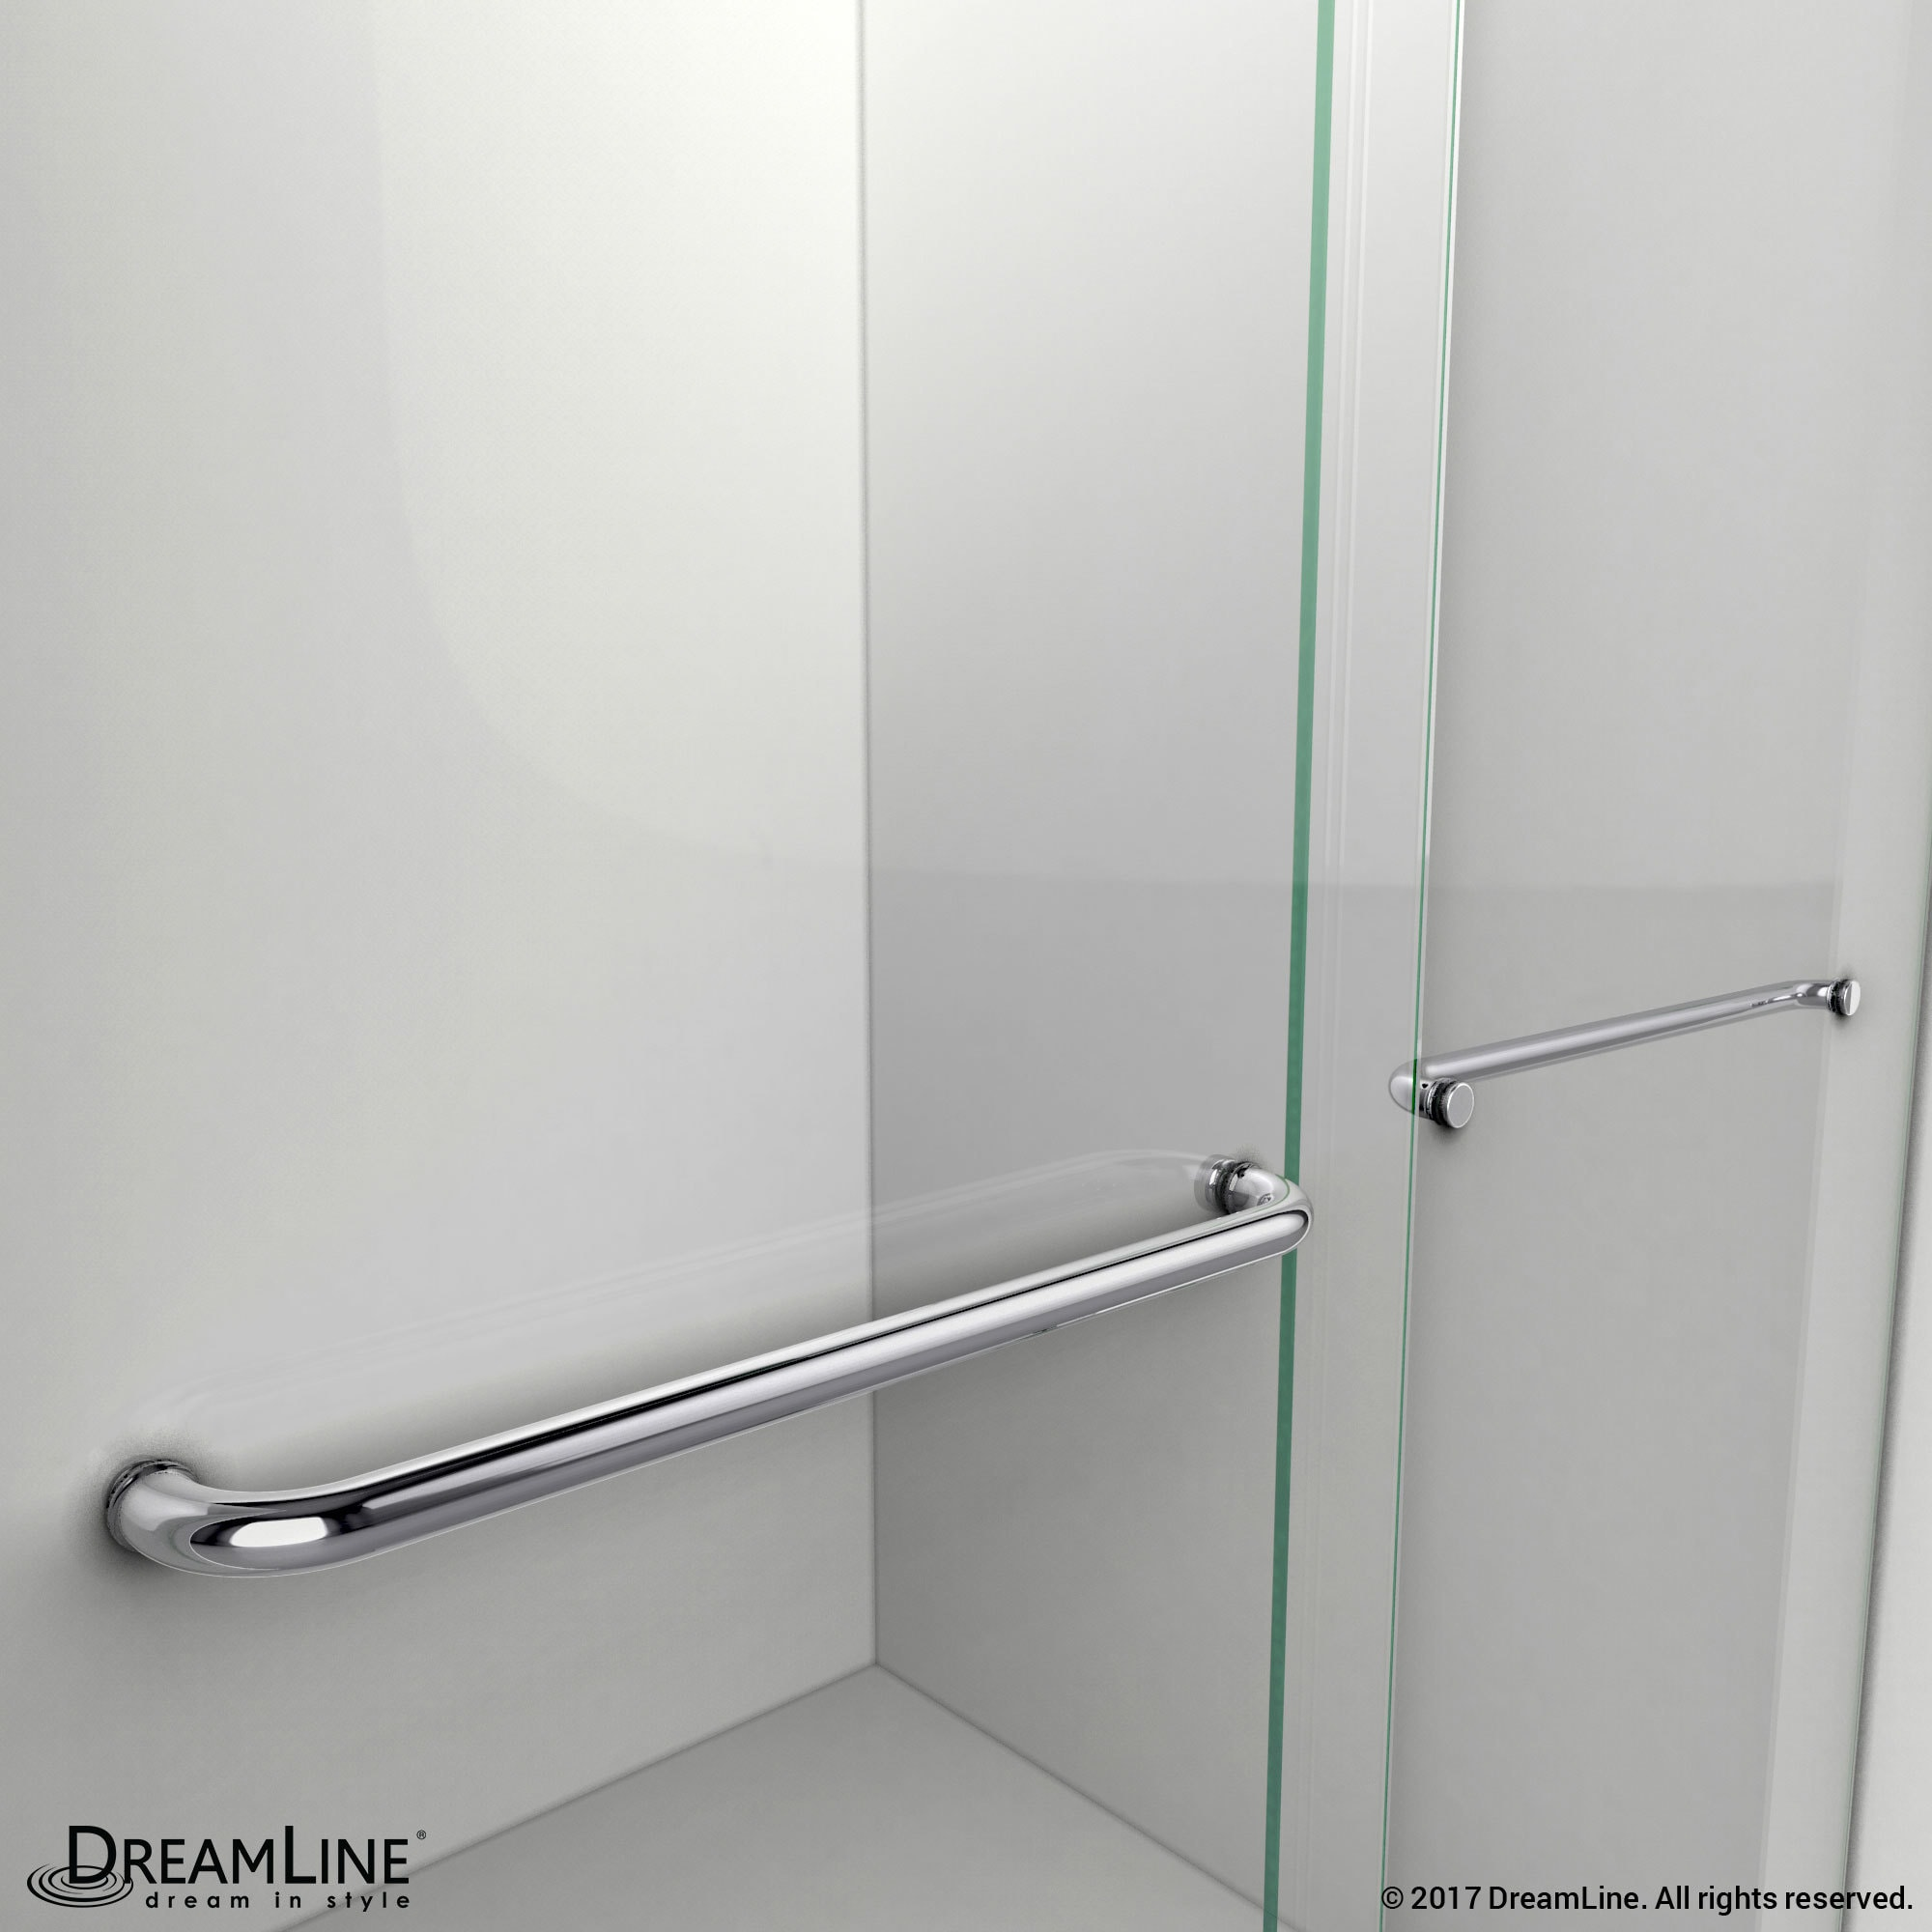 locks specialist door bespoke handles leaderzzz shower toughened with author online glass partition